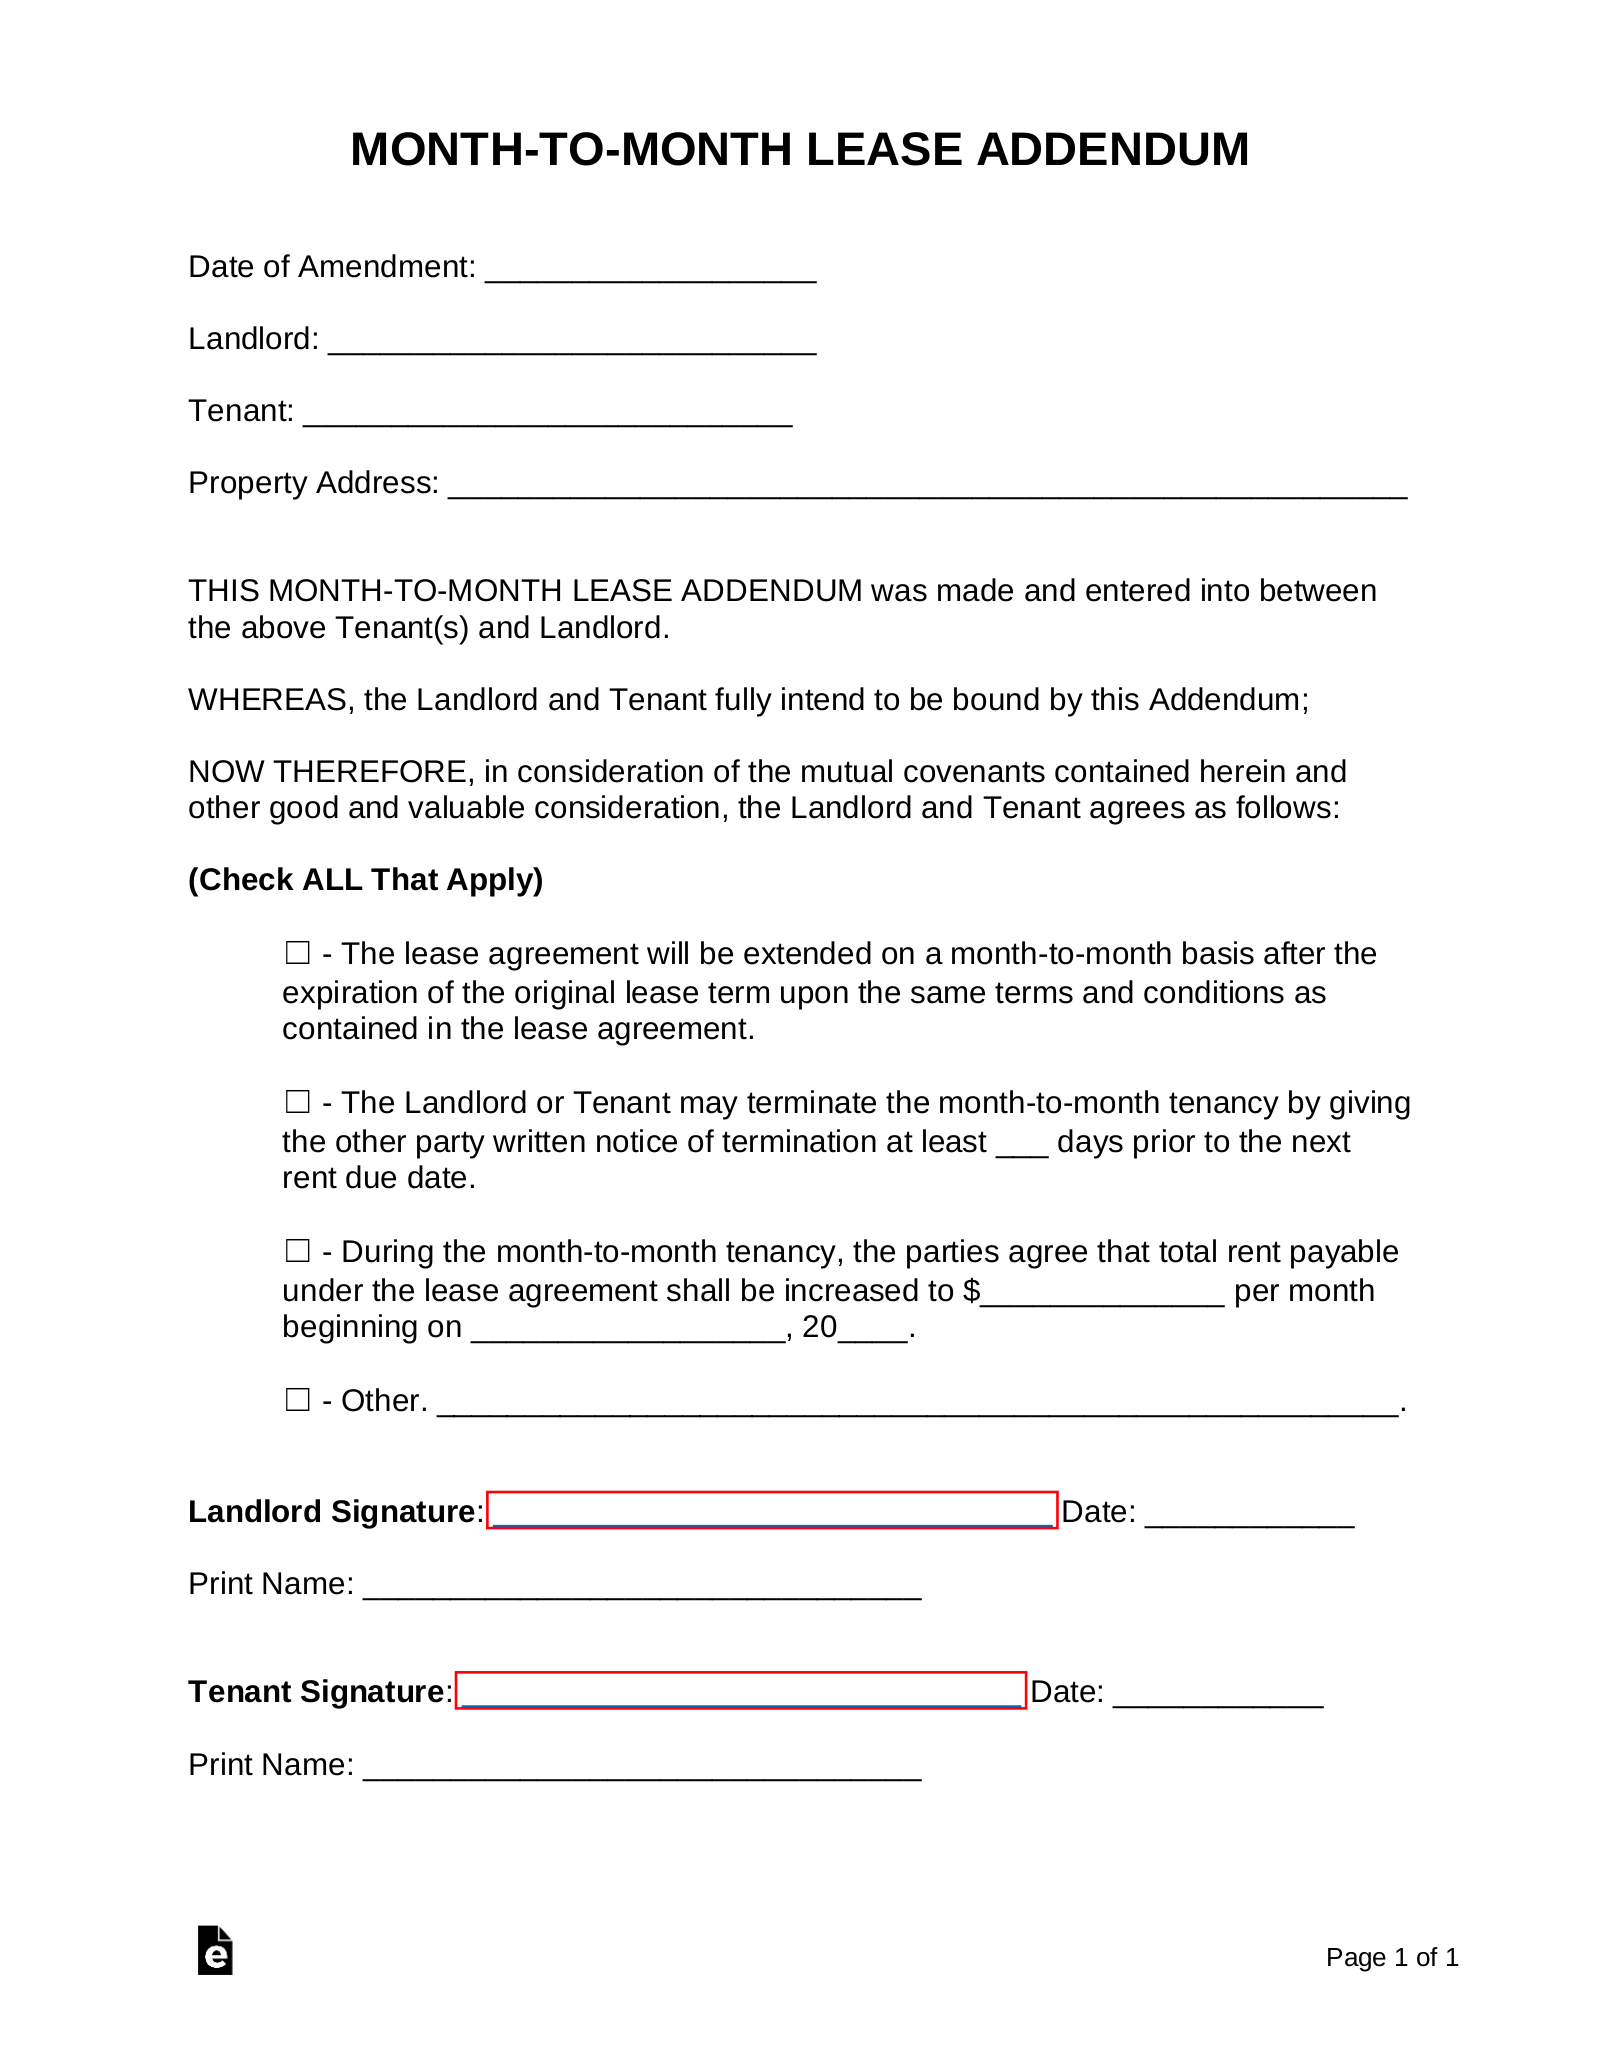 Month To Month Lease >> Free Month To Month Lease Addendum Template Pdf Word